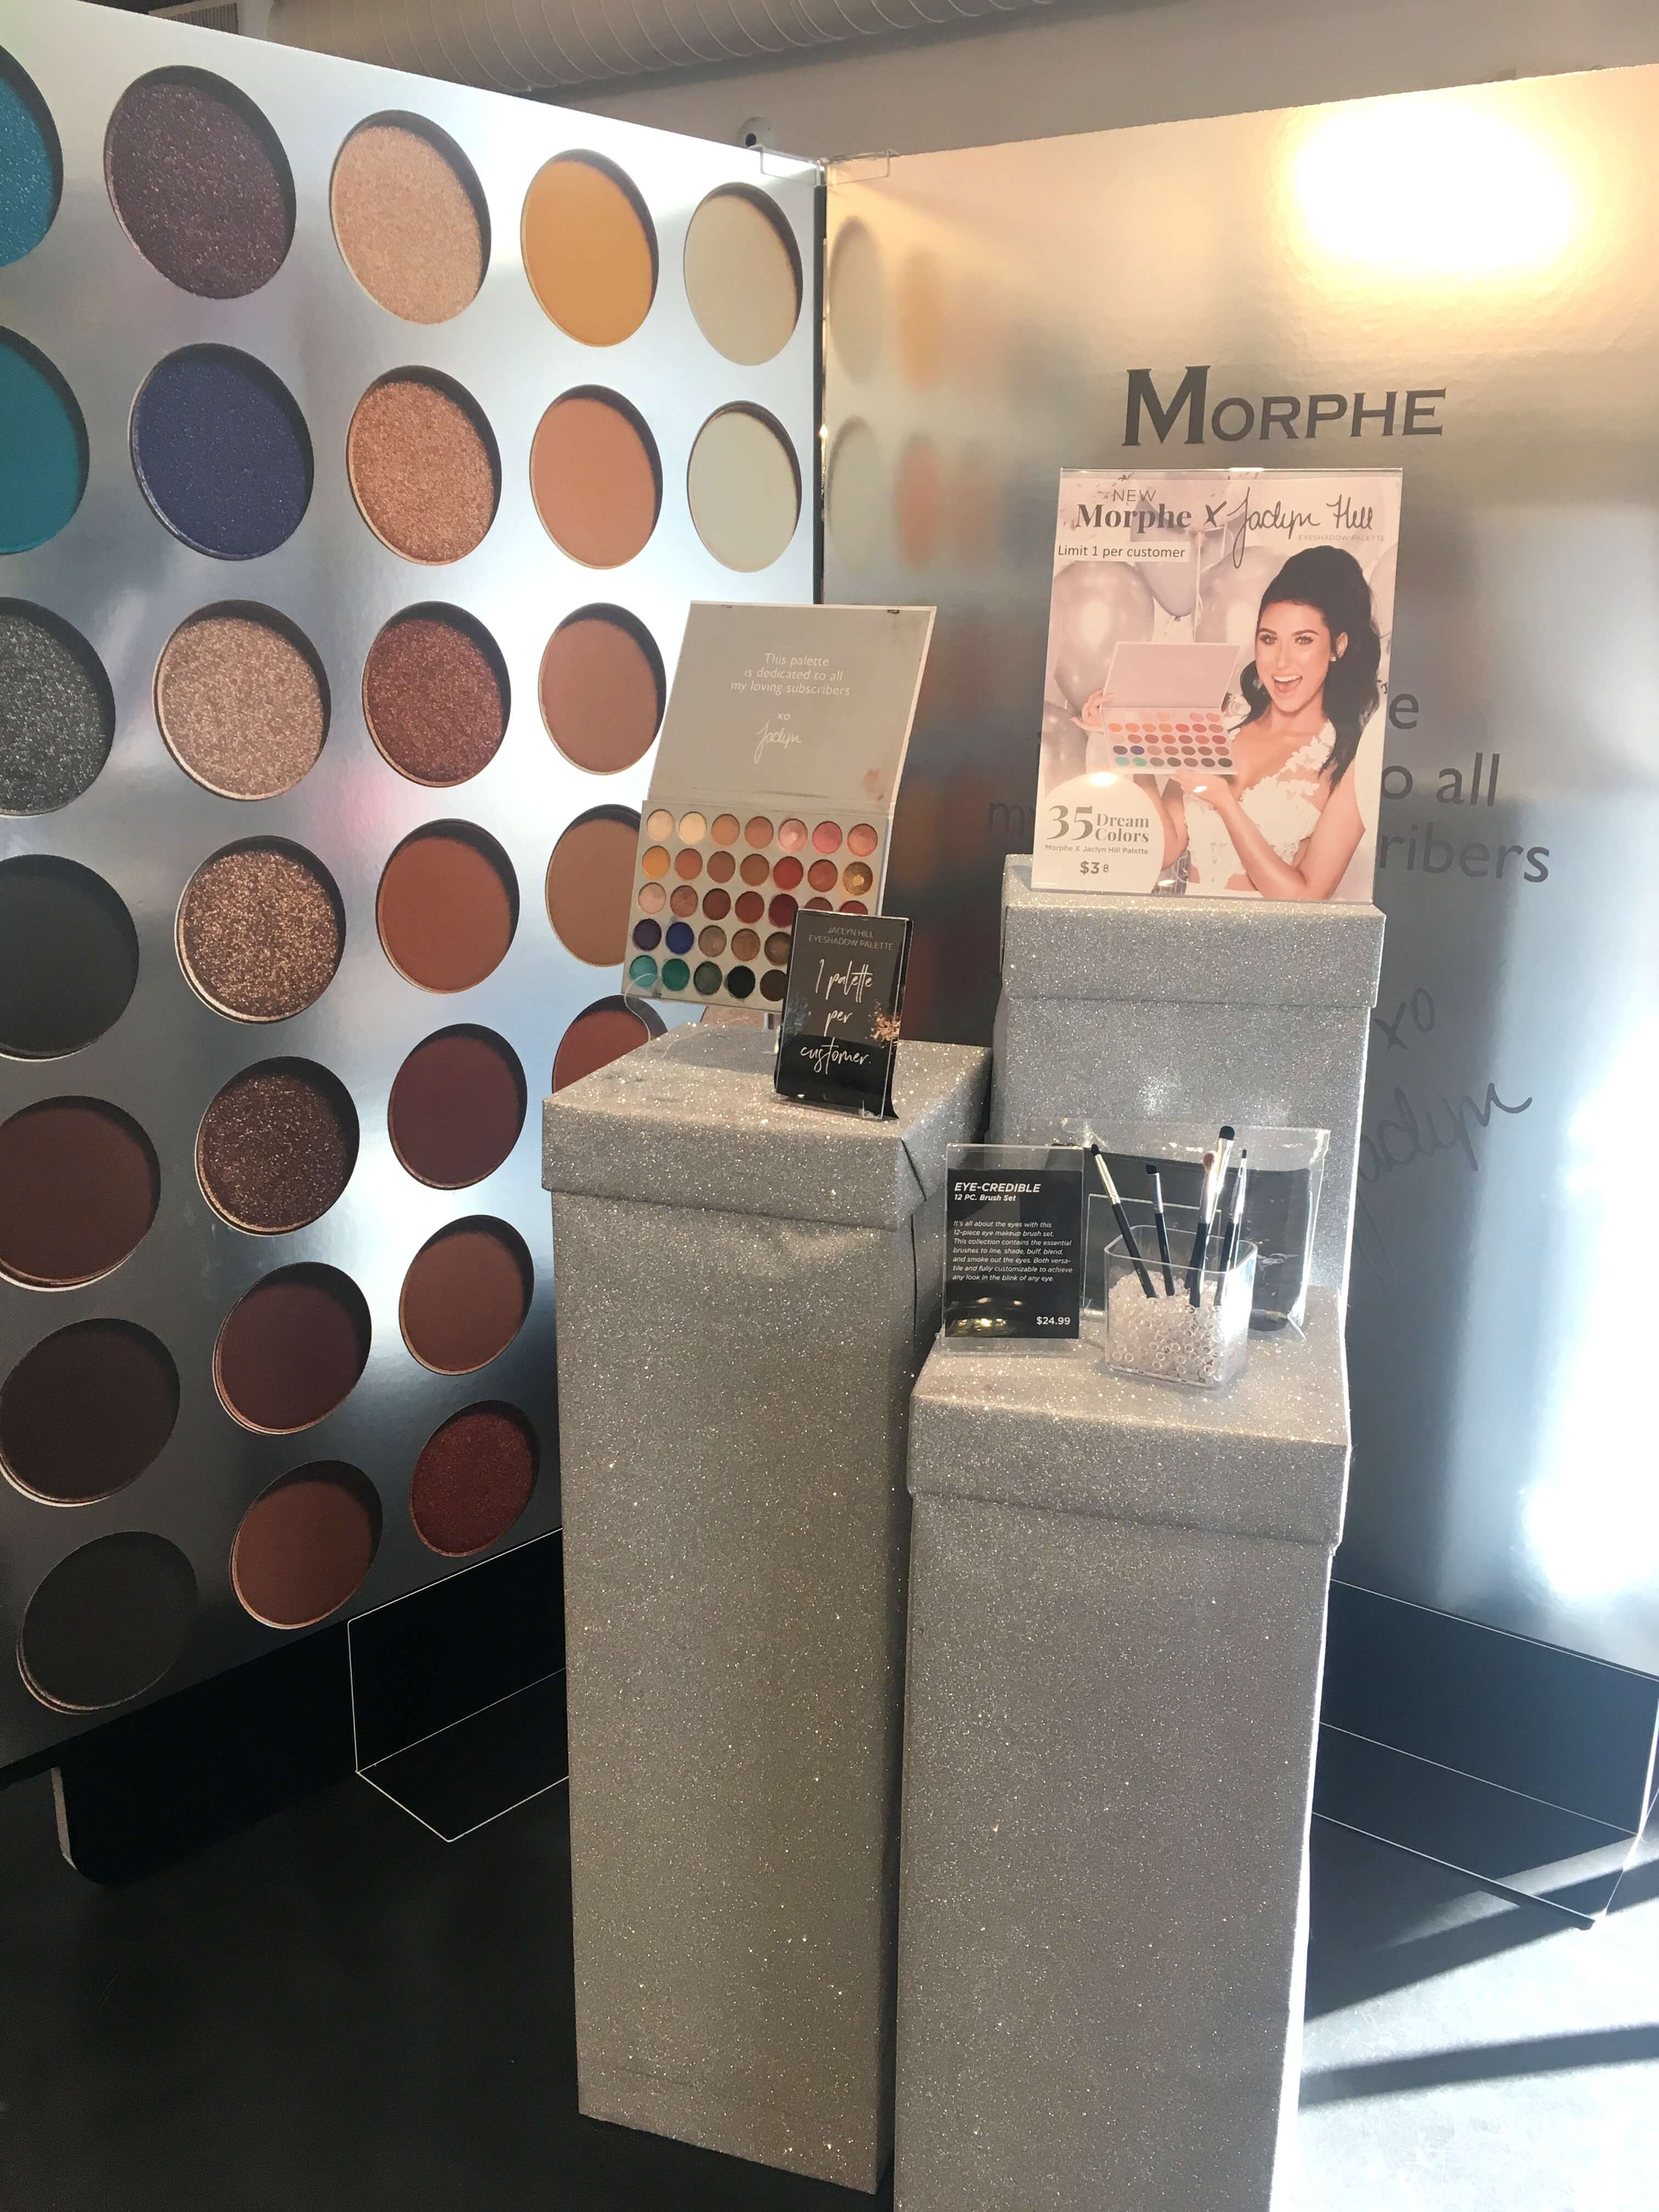 los-angeles-reisetagebuch-makeupinflight-morphe-jaclyn-hill-2